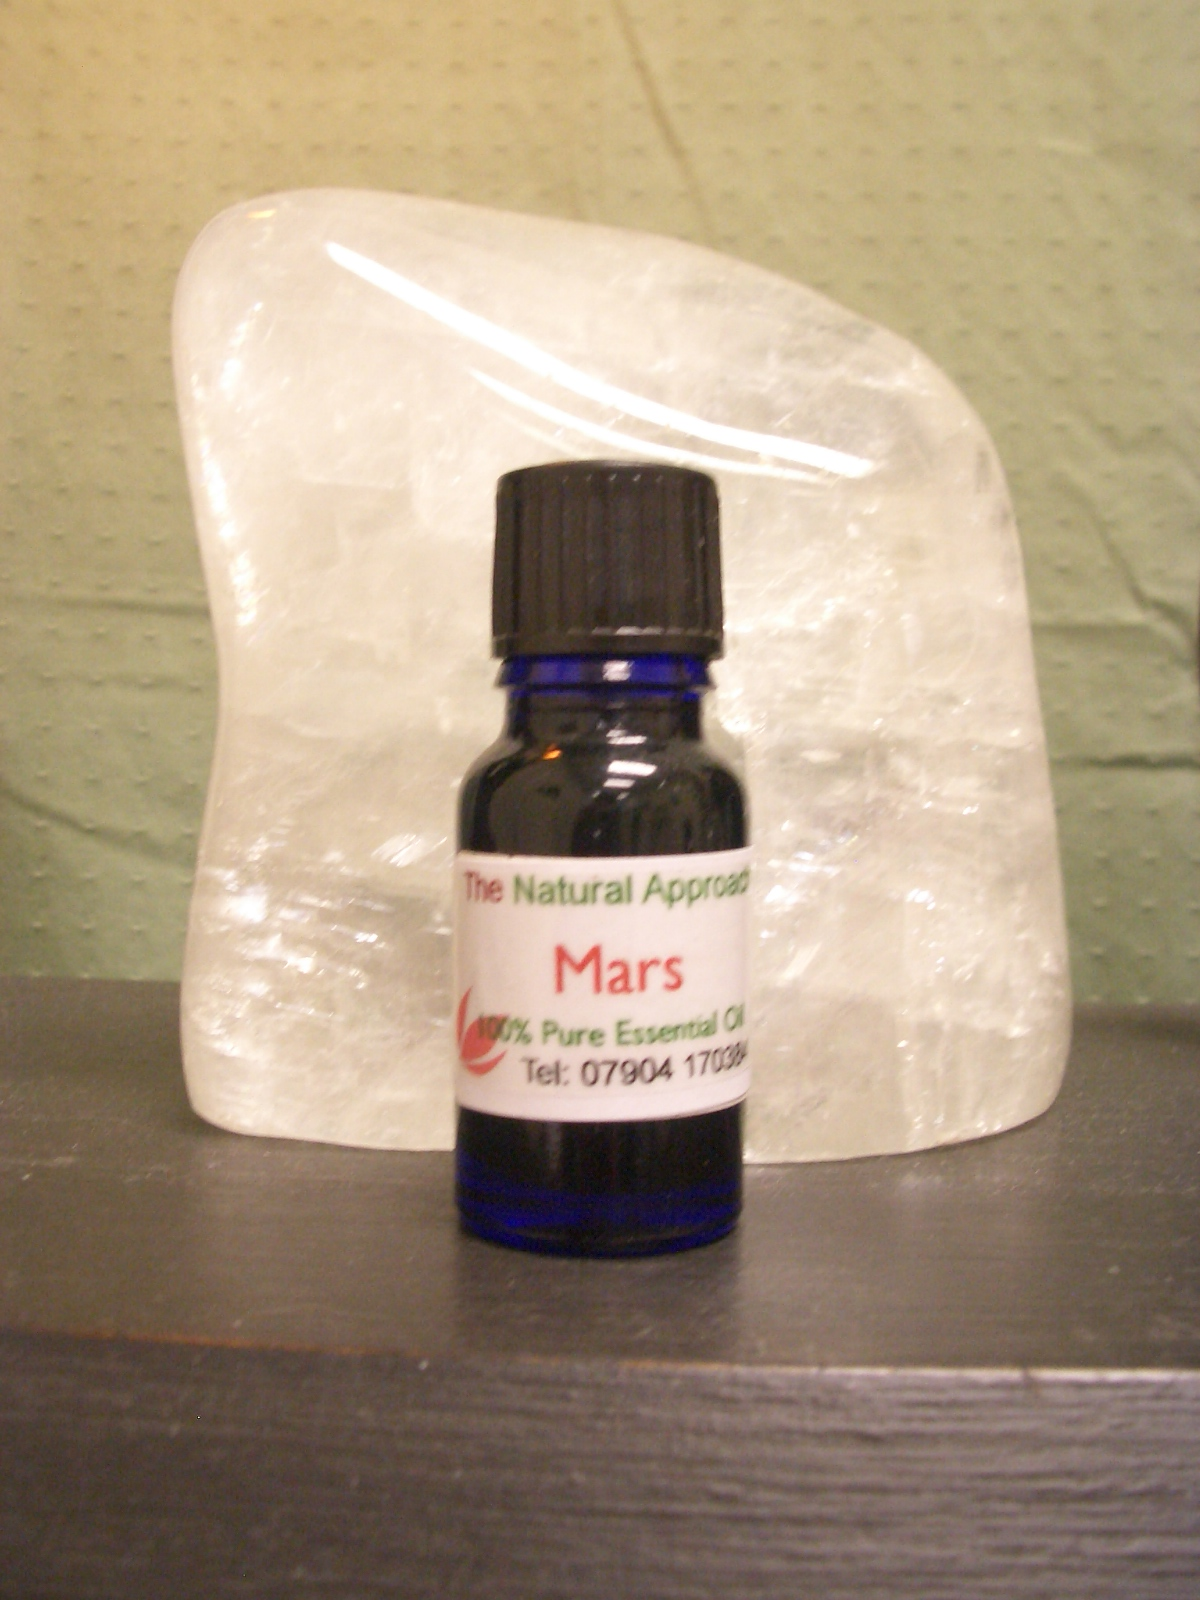 Mars - Stimulating and Invigorating